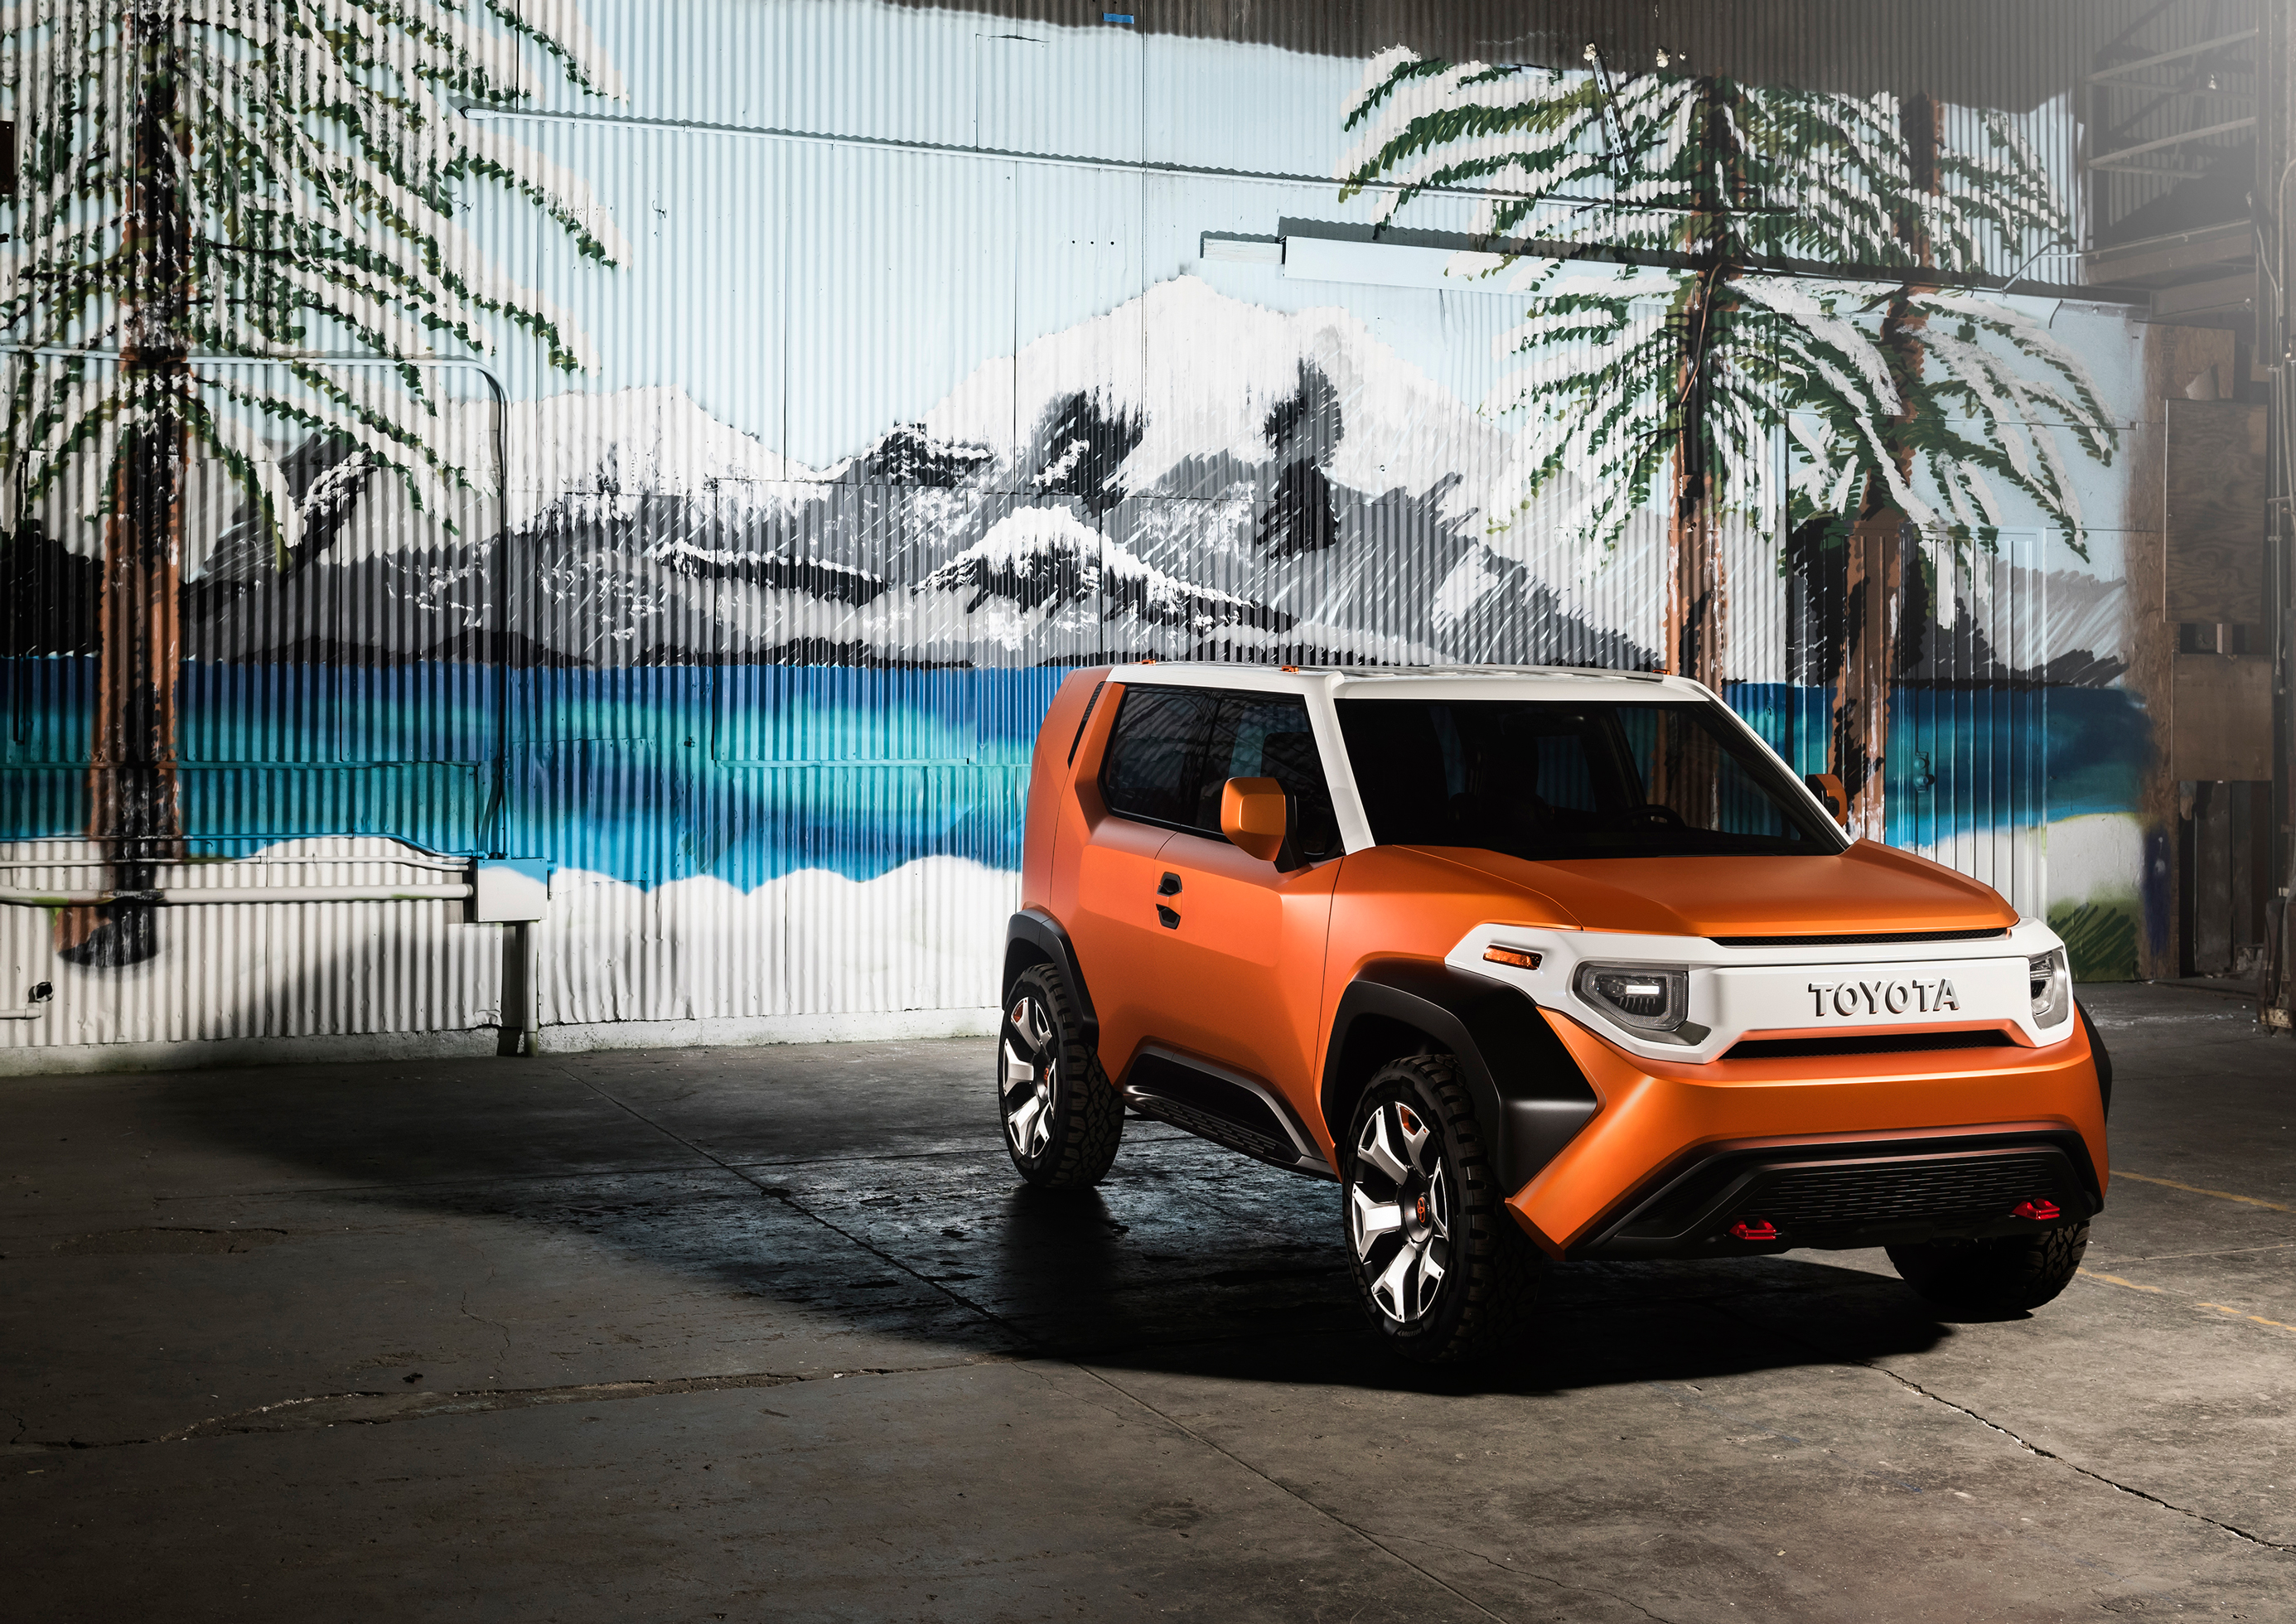 2018 Toyota FT-4X: Is It FJ Cruiser's Succesor Or Not >> Toyota Ft 4x Concept A New Toy For Youth Funtodrive Net